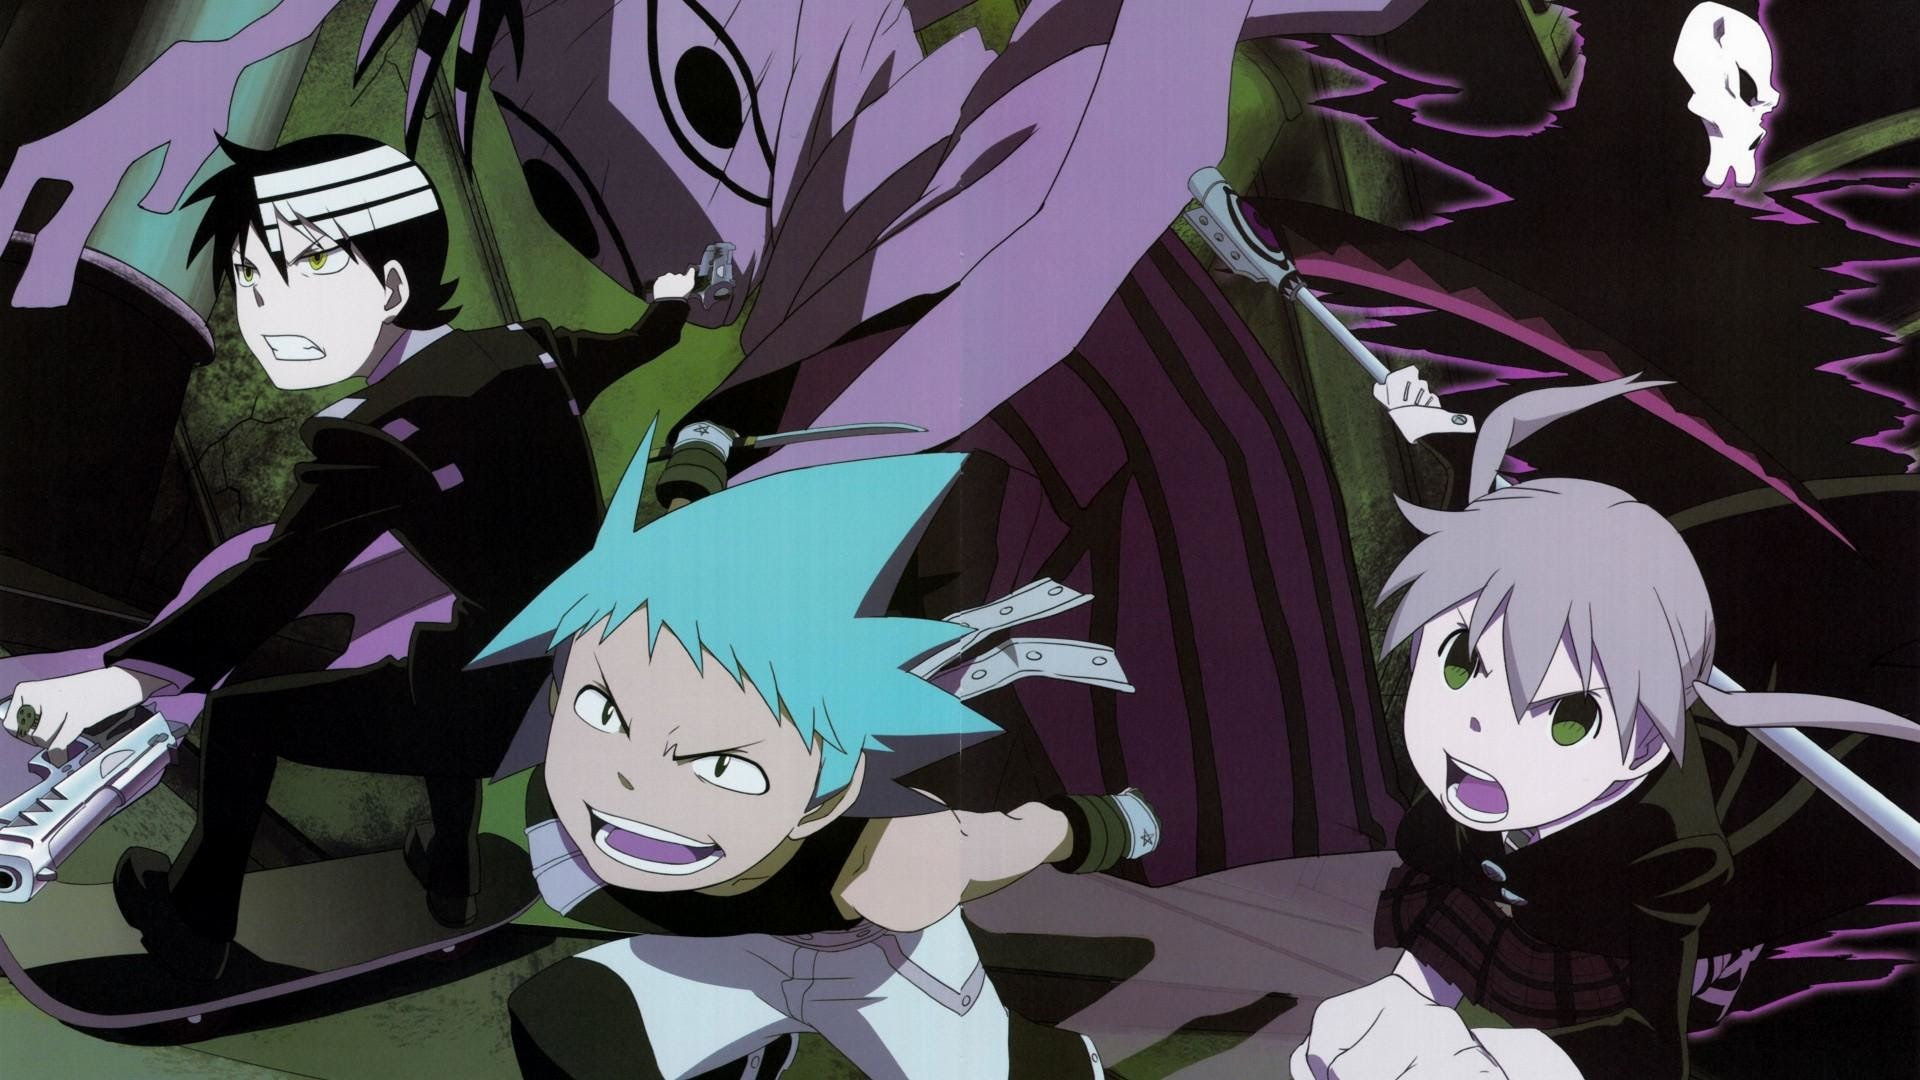 Soul Eater Wallpaper 1920x1080 69 Images